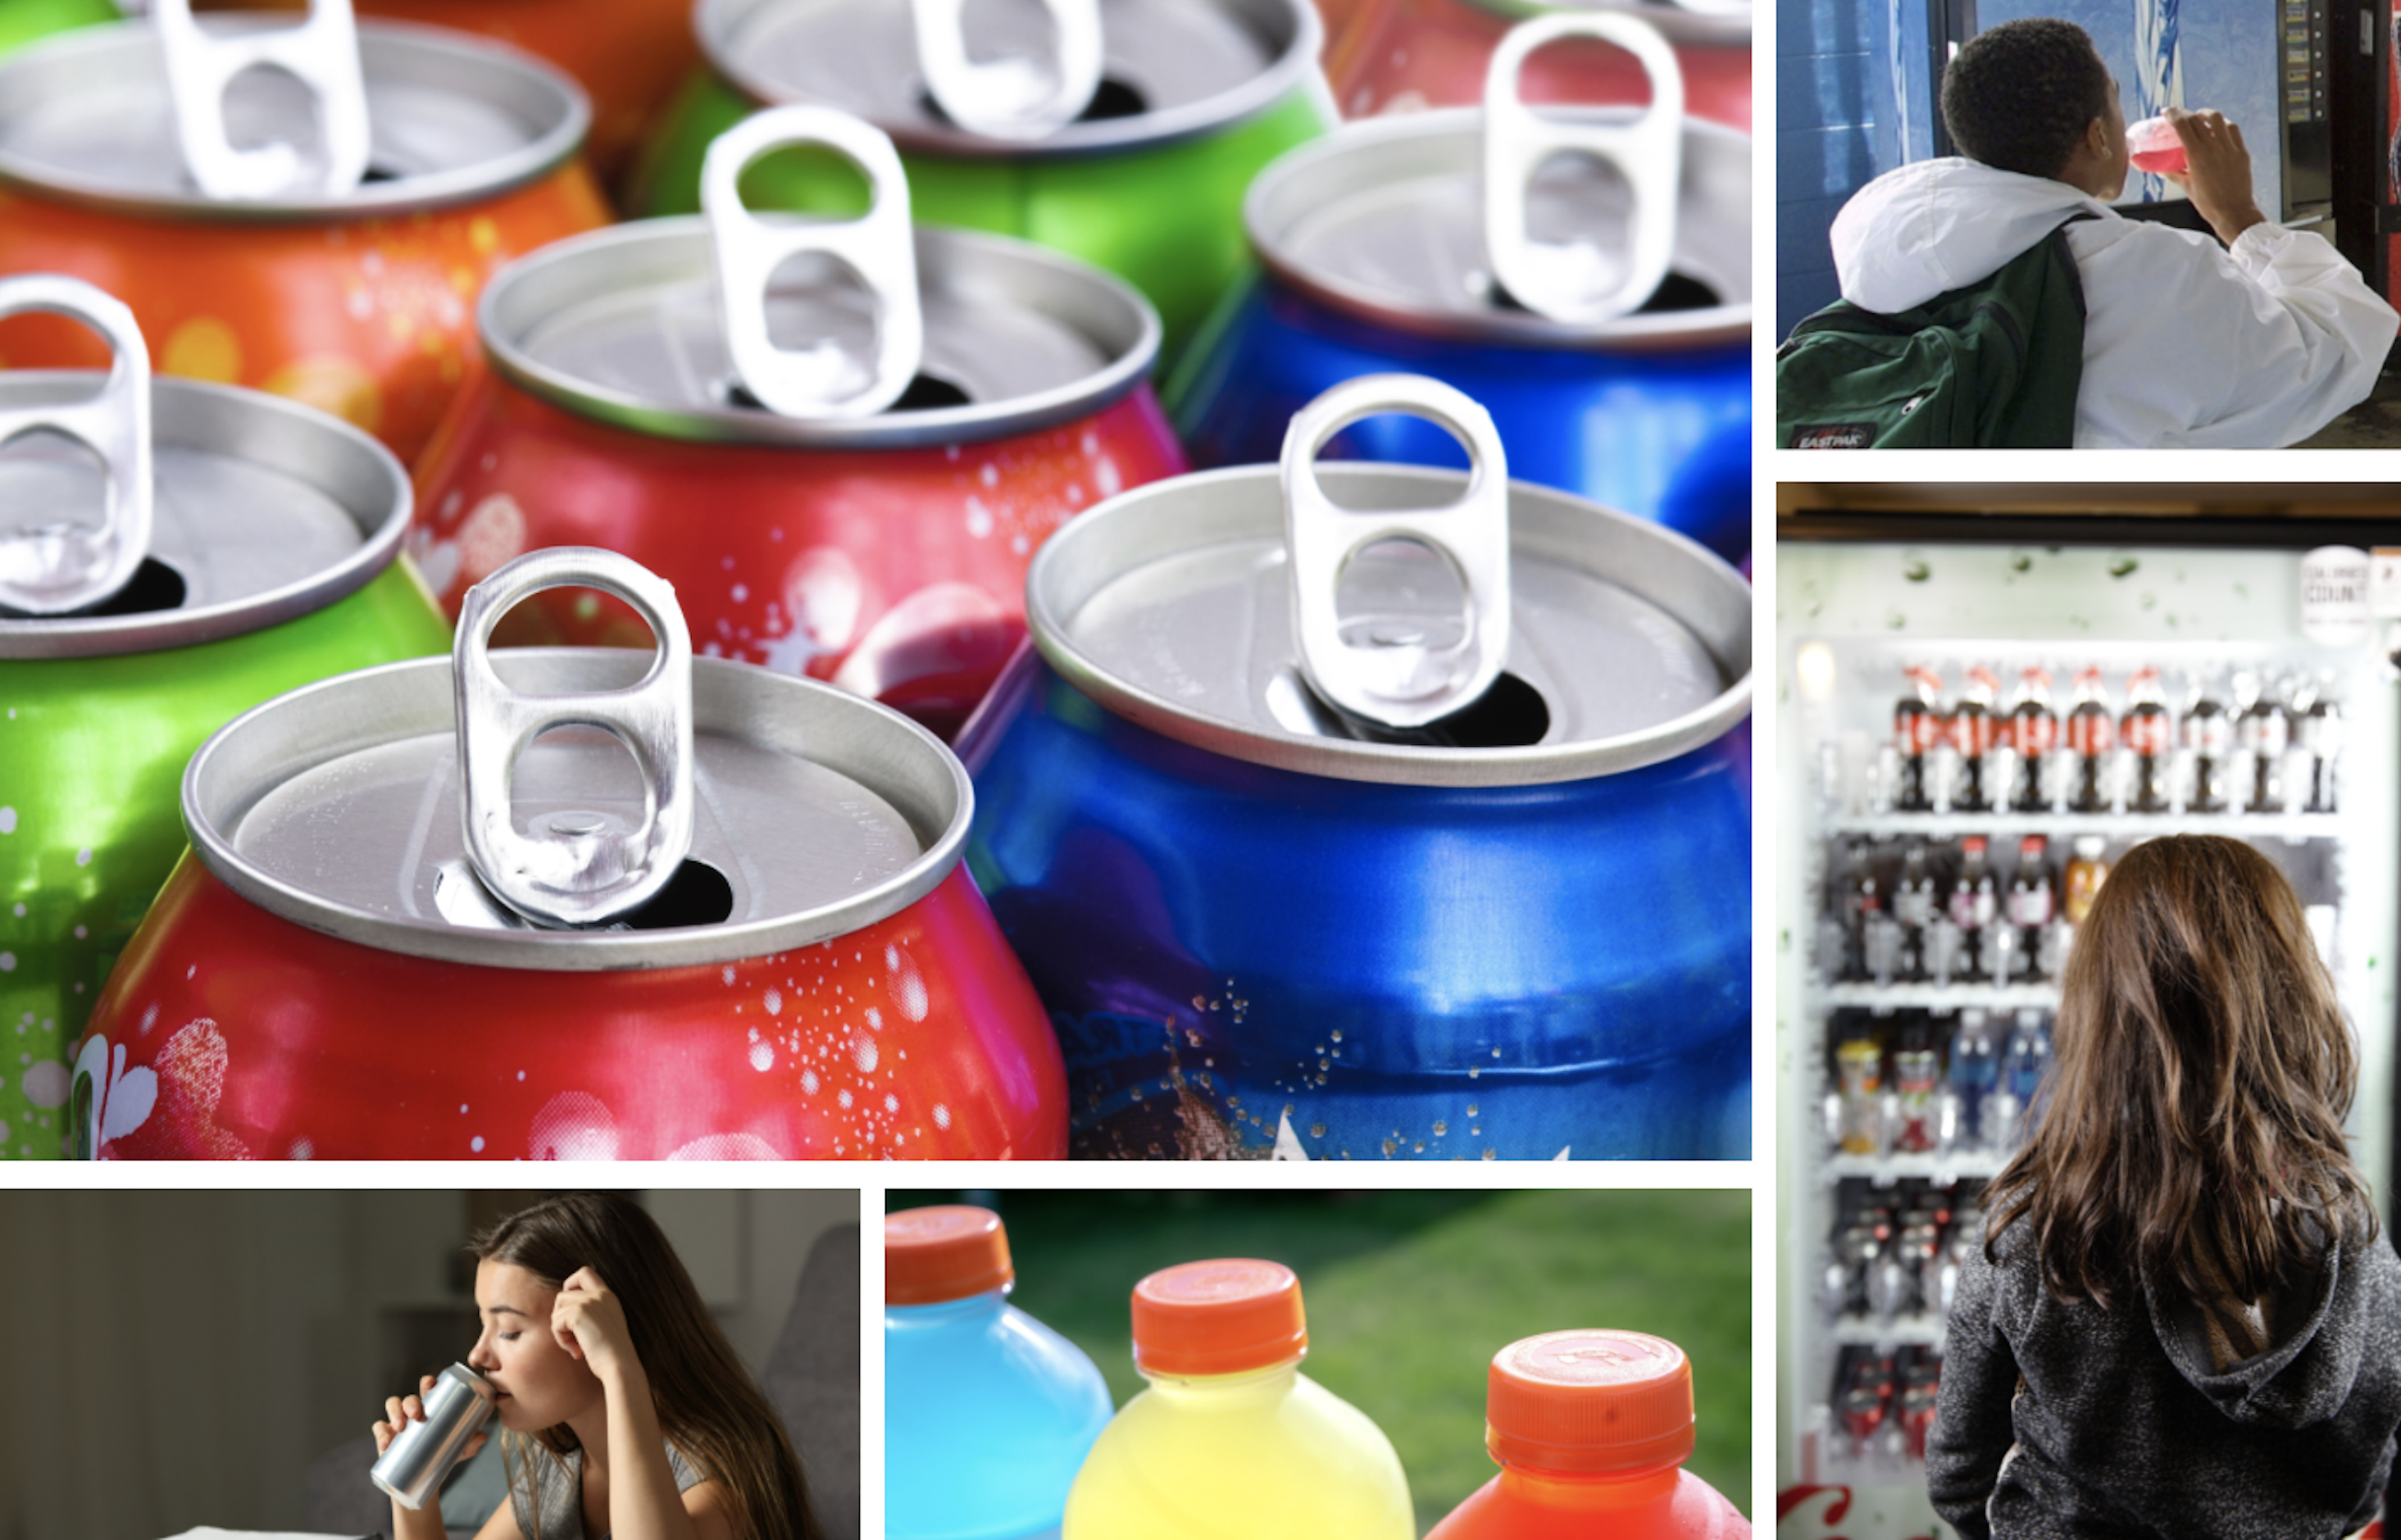 FCollage of various types of sugary drinks